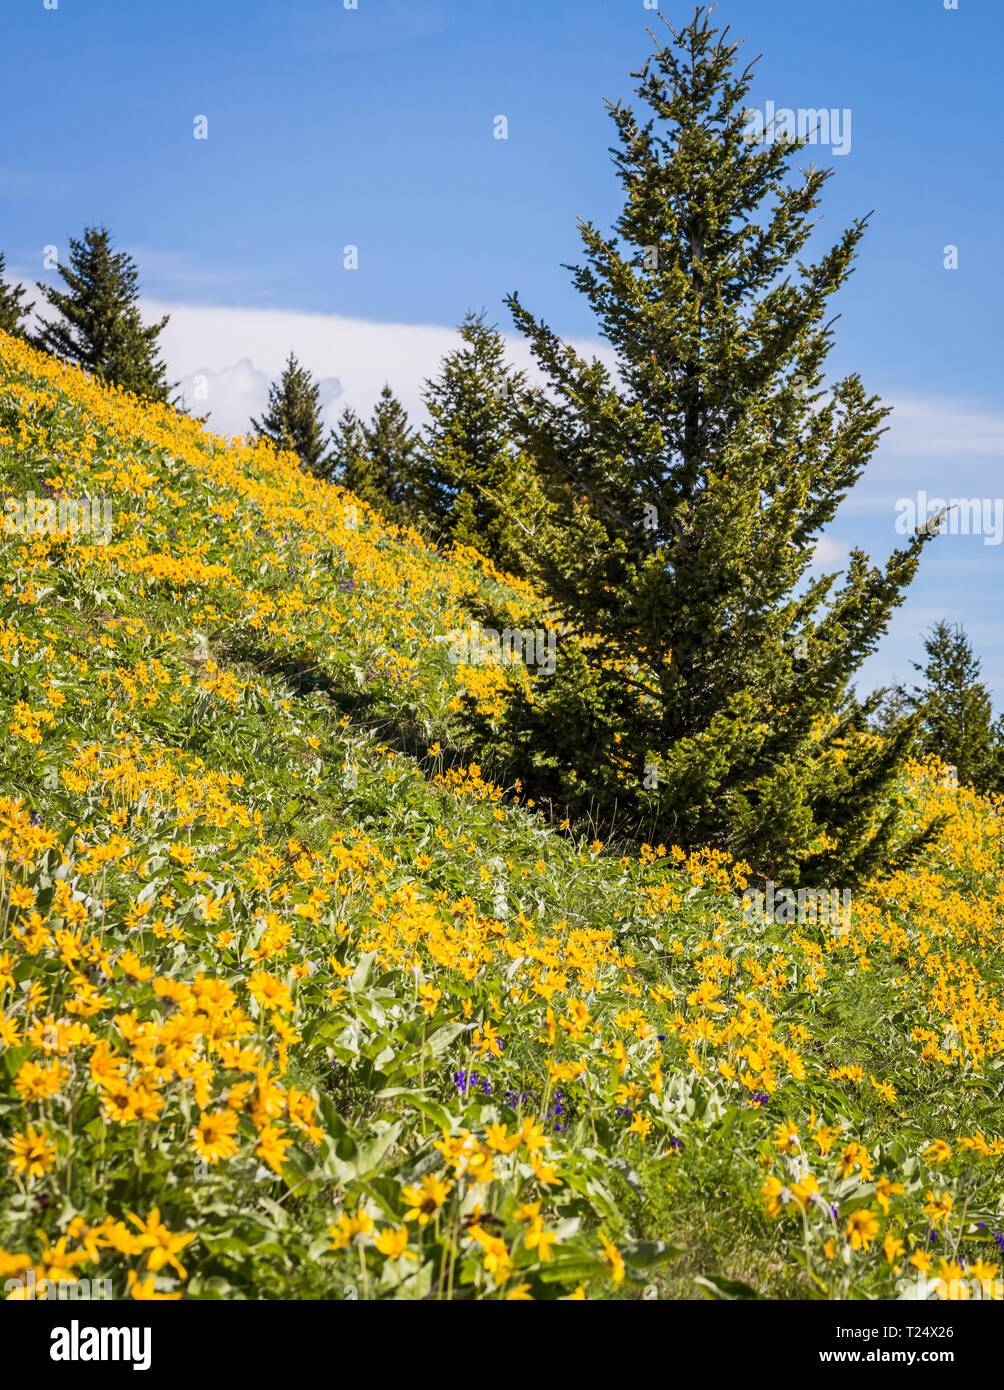 Balsamroot Flower Landscapes And Backgrounds With Evergreen Trees Stock Photo Alamy